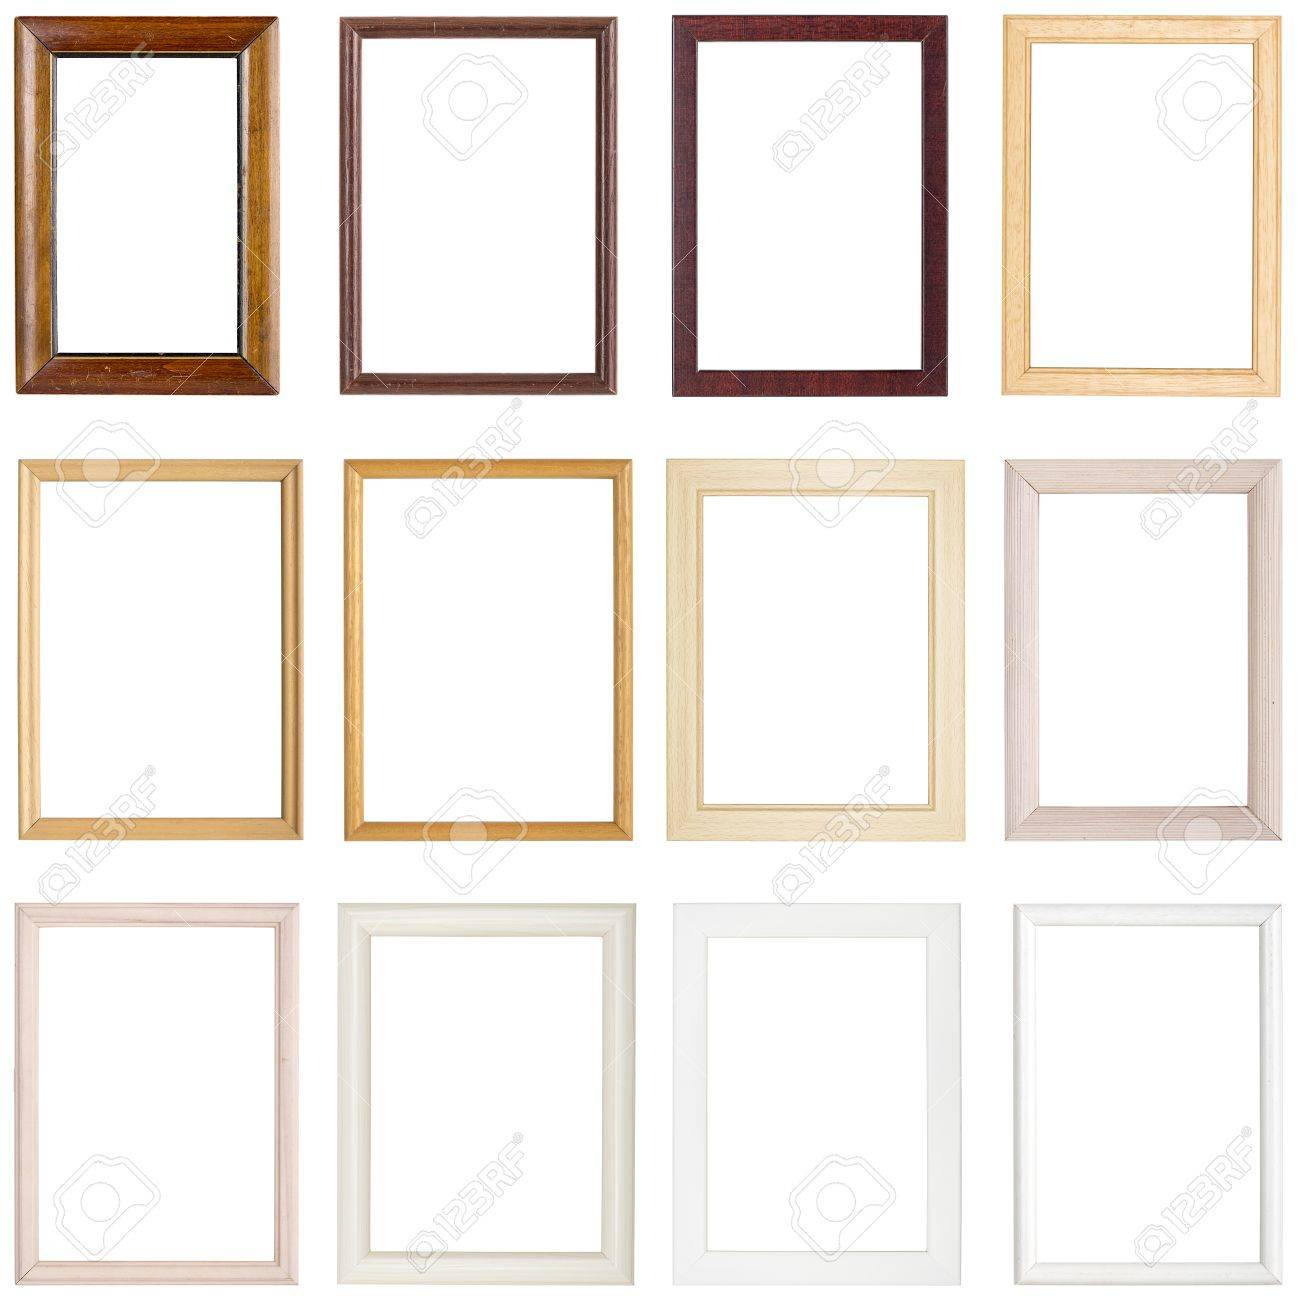 Collection of simple wooden picture frames isolated on white collection of simple wooden picture frames isolated on white stock photo 37503920 jeuxipadfo Images